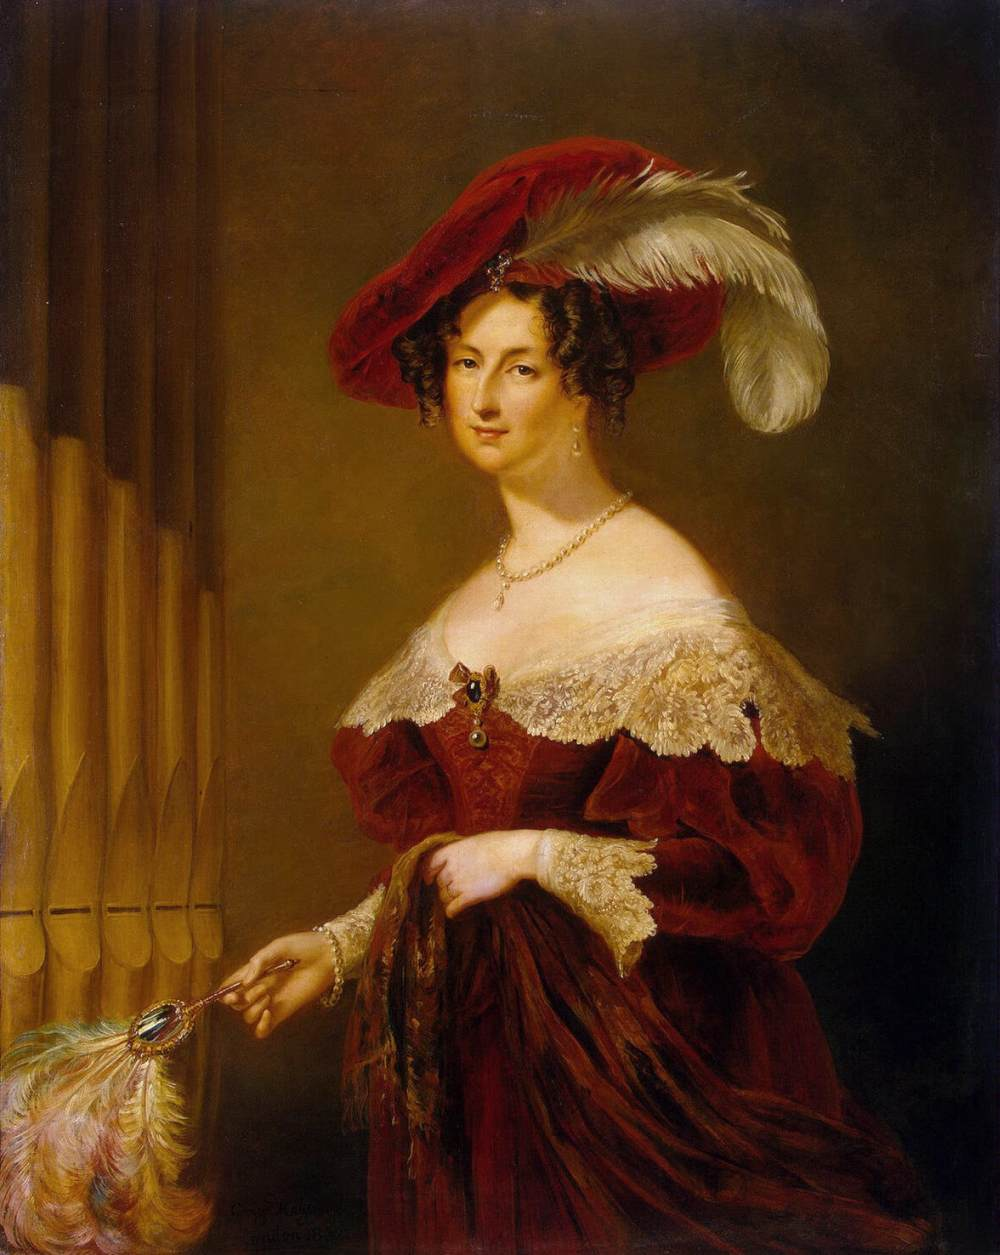 http://upload.wikimedia.org/wikipedia/commons/9/9a/George_Hayter_-_Portrait_of_Countess_Yelizaveta_Vorontsova_-_WGA11228.jpg